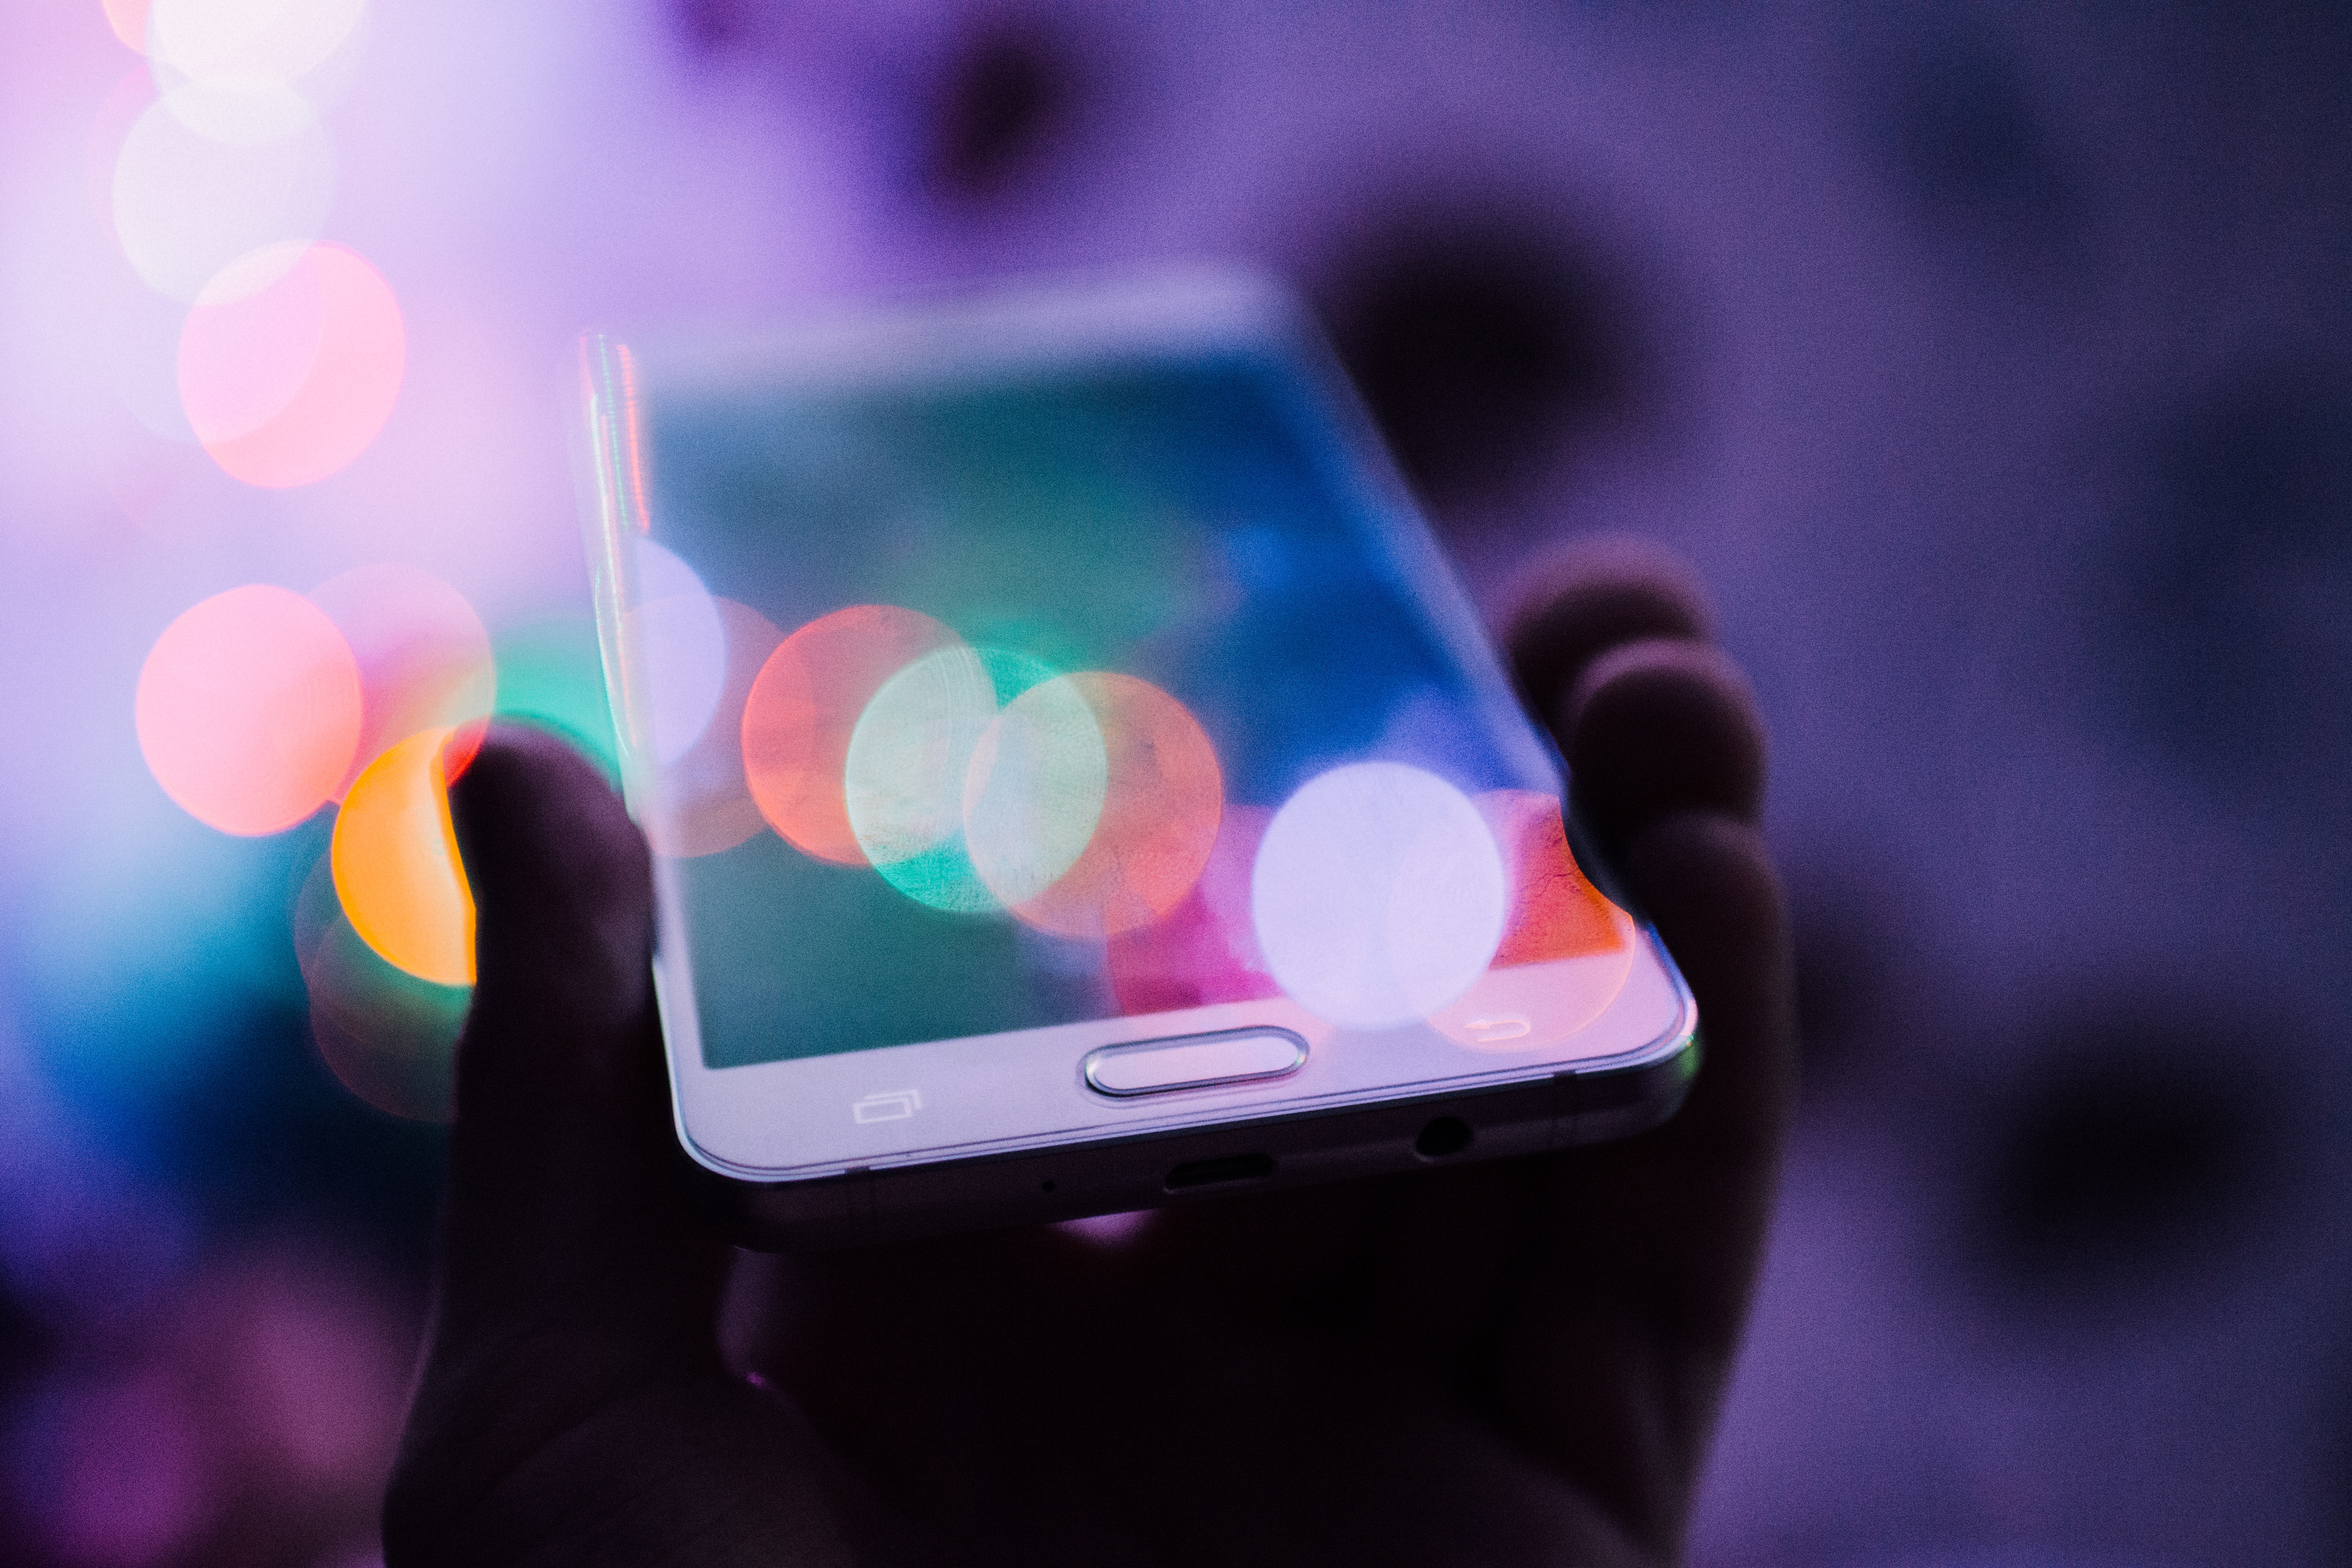 Top 5 Tips to Using Apps Safely